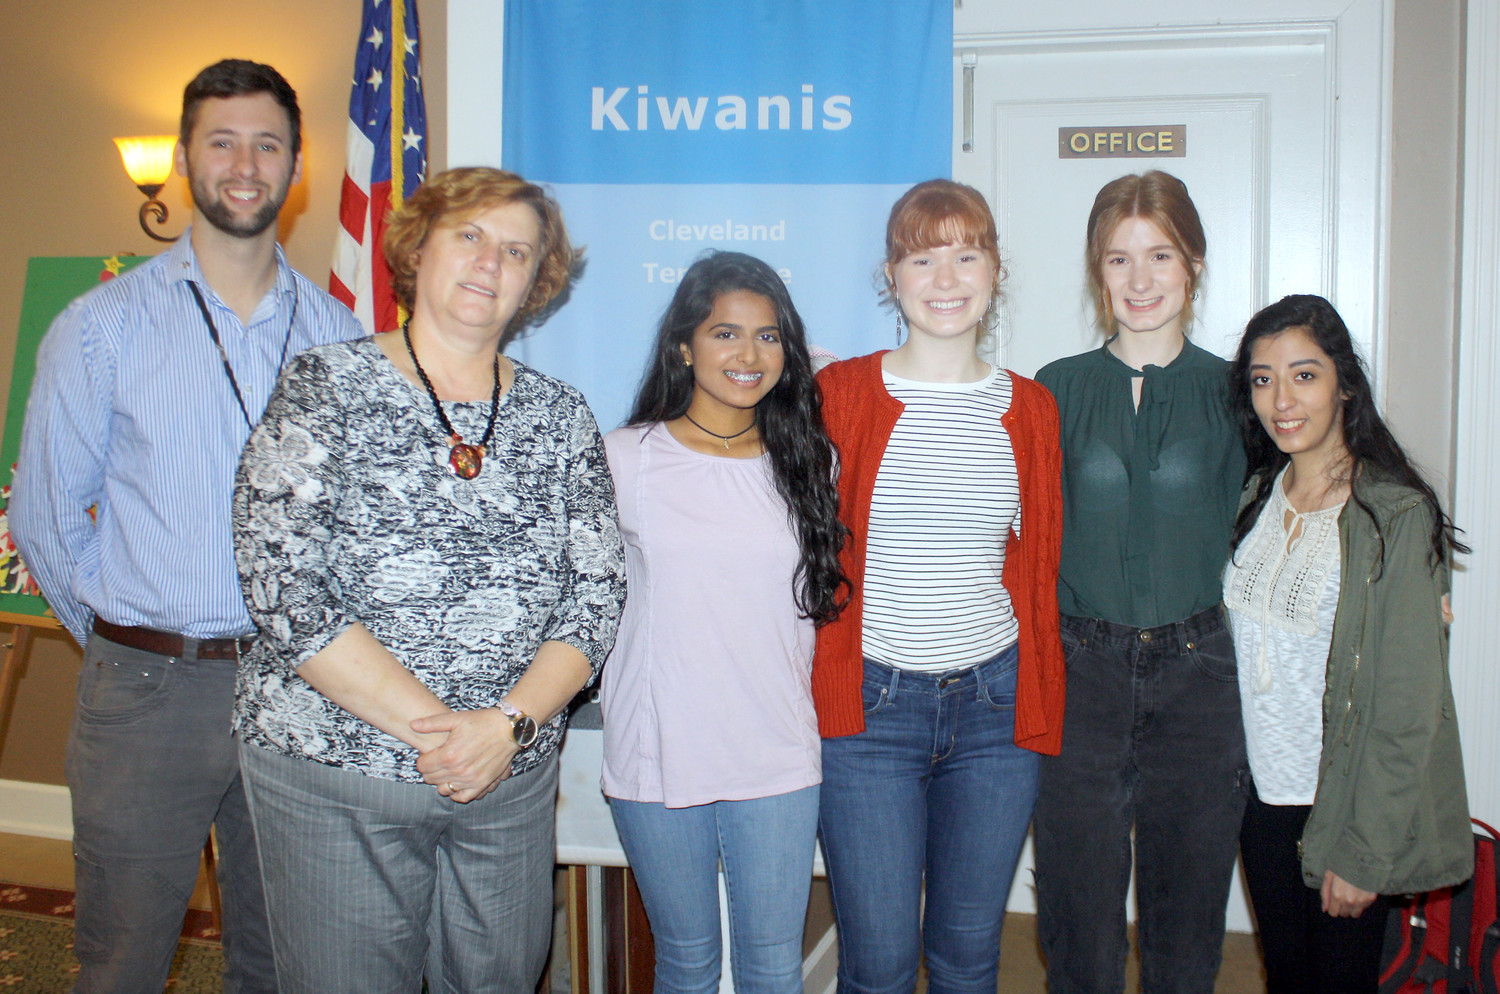 "CLEVELAND KIWANIS President Mike Stoess, left, is shown with members of the Cleveland High School Key Club. At a recent Kiwanis Club luncheon were Key Club sponsor ""Gabby"" Tallent, second from left, and club members, from left, Aryali Patel, Olivia Miller, Carolyn Miller and Fernanda Tellez."